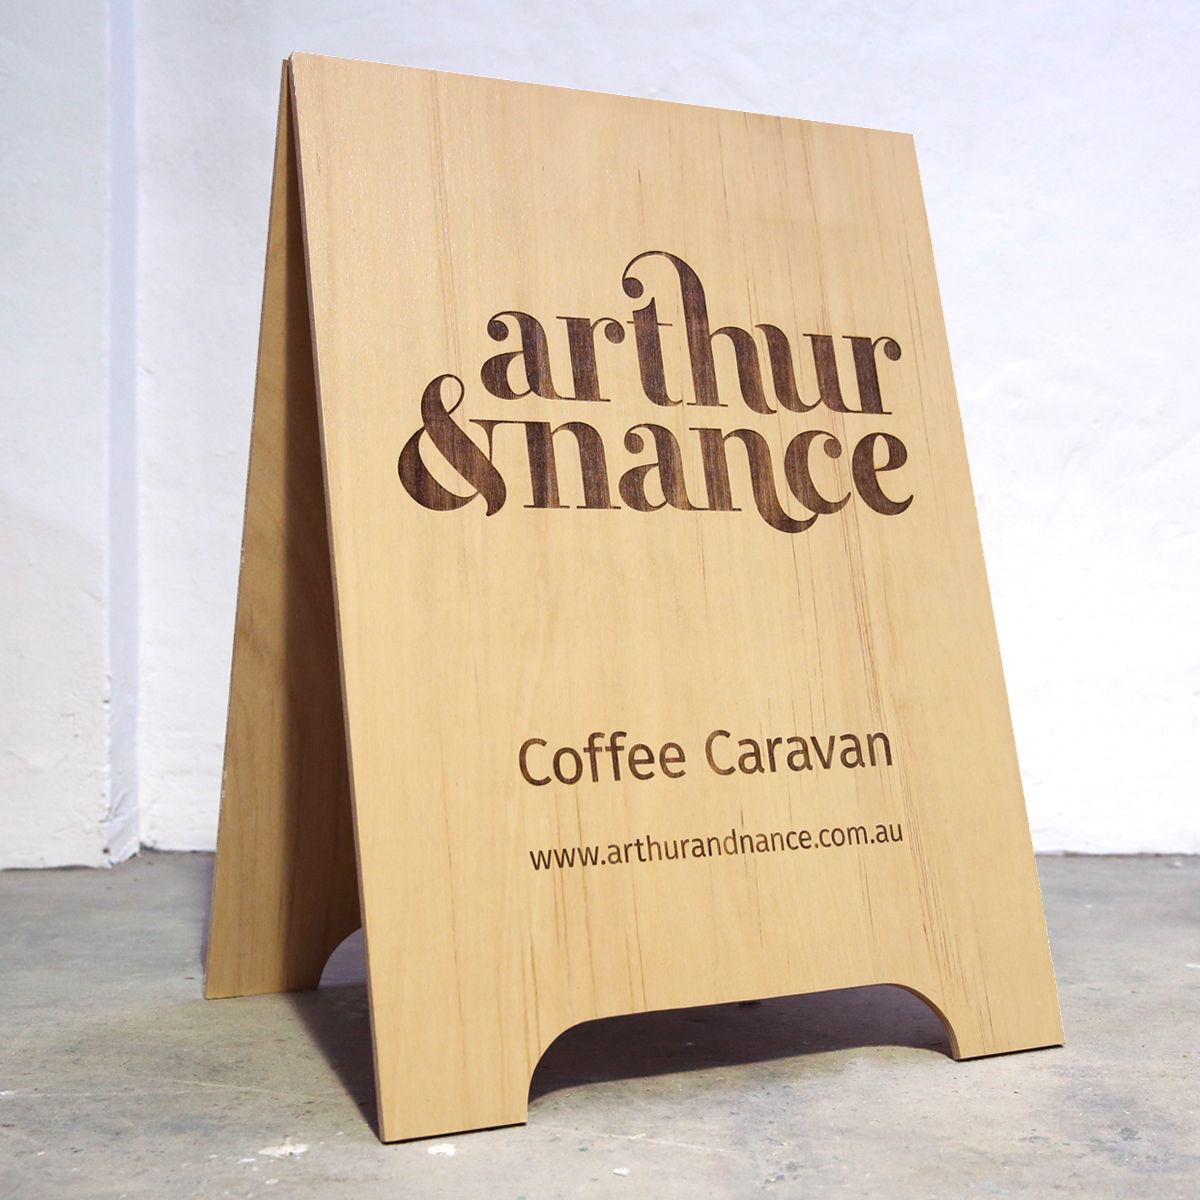 Timber A Frame Sign Boards Are Great Portable Signage Option For Shopfronts Markets Weddings And Events Hand Made In Sydney Get Quote Now